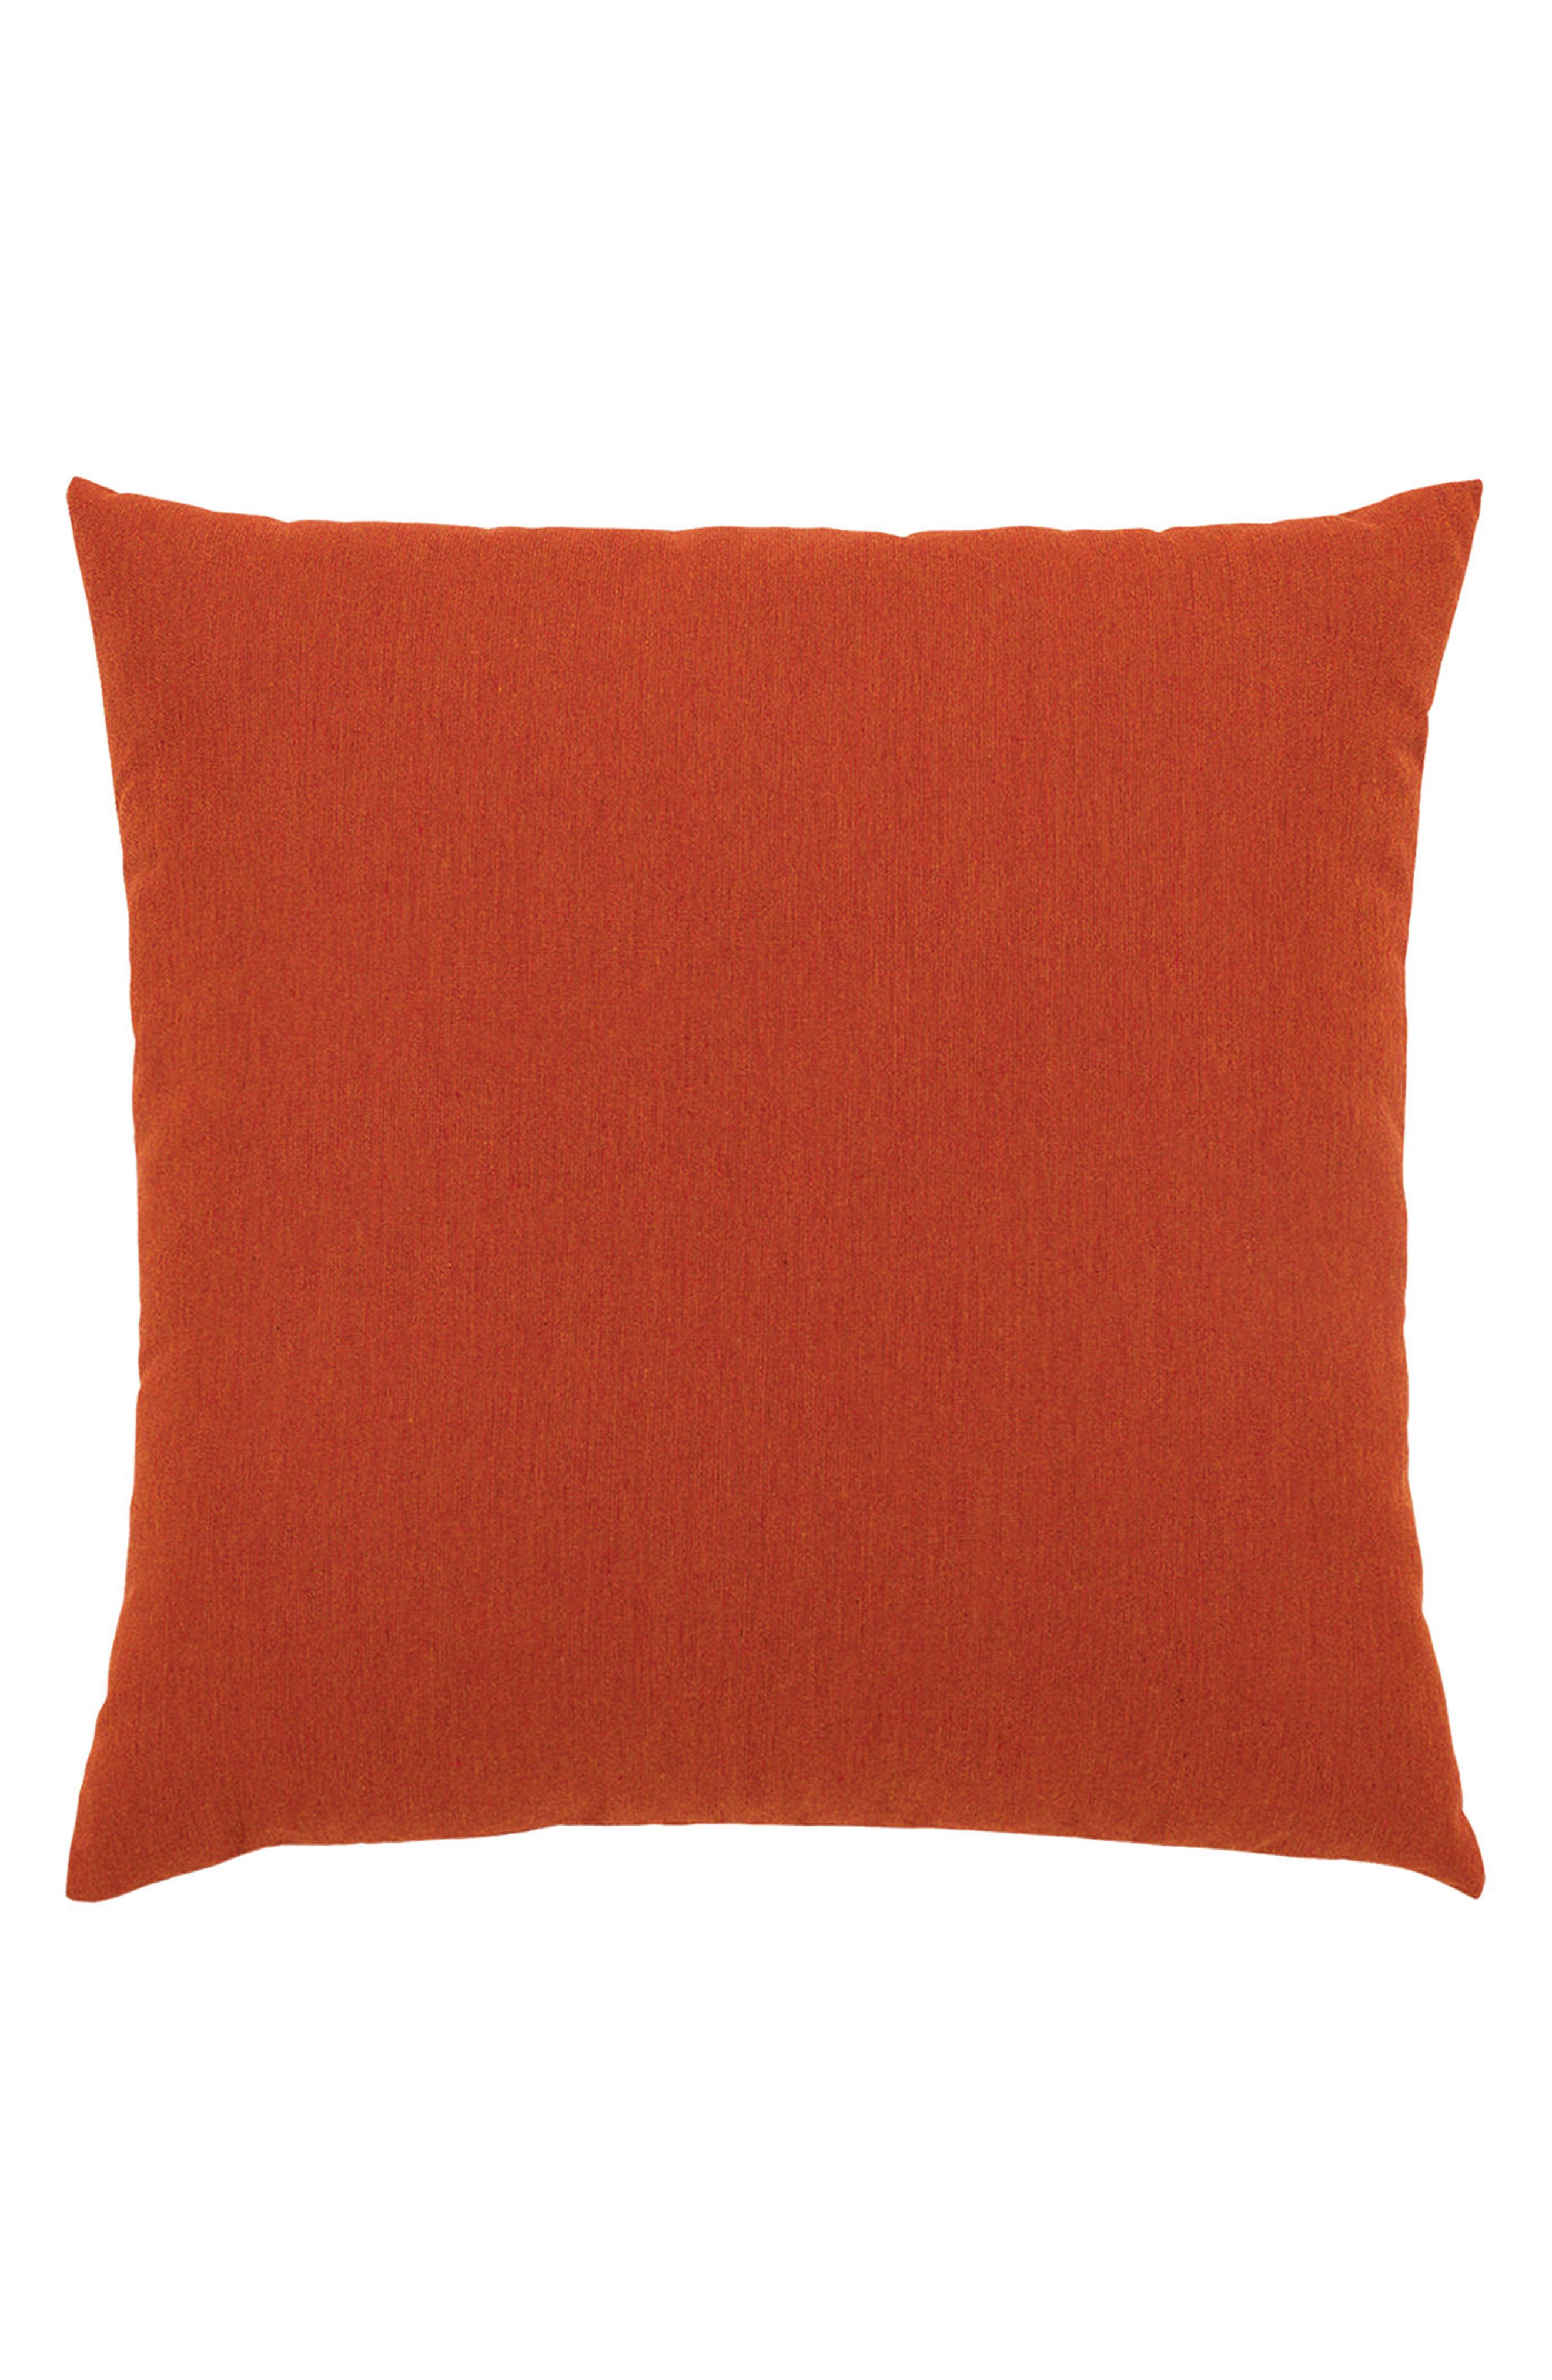 ELAINE SMITH,                             Coral Cruise Indoor/Outdoor Accent Pillow,                             Alternate thumbnail 2, color,                             800